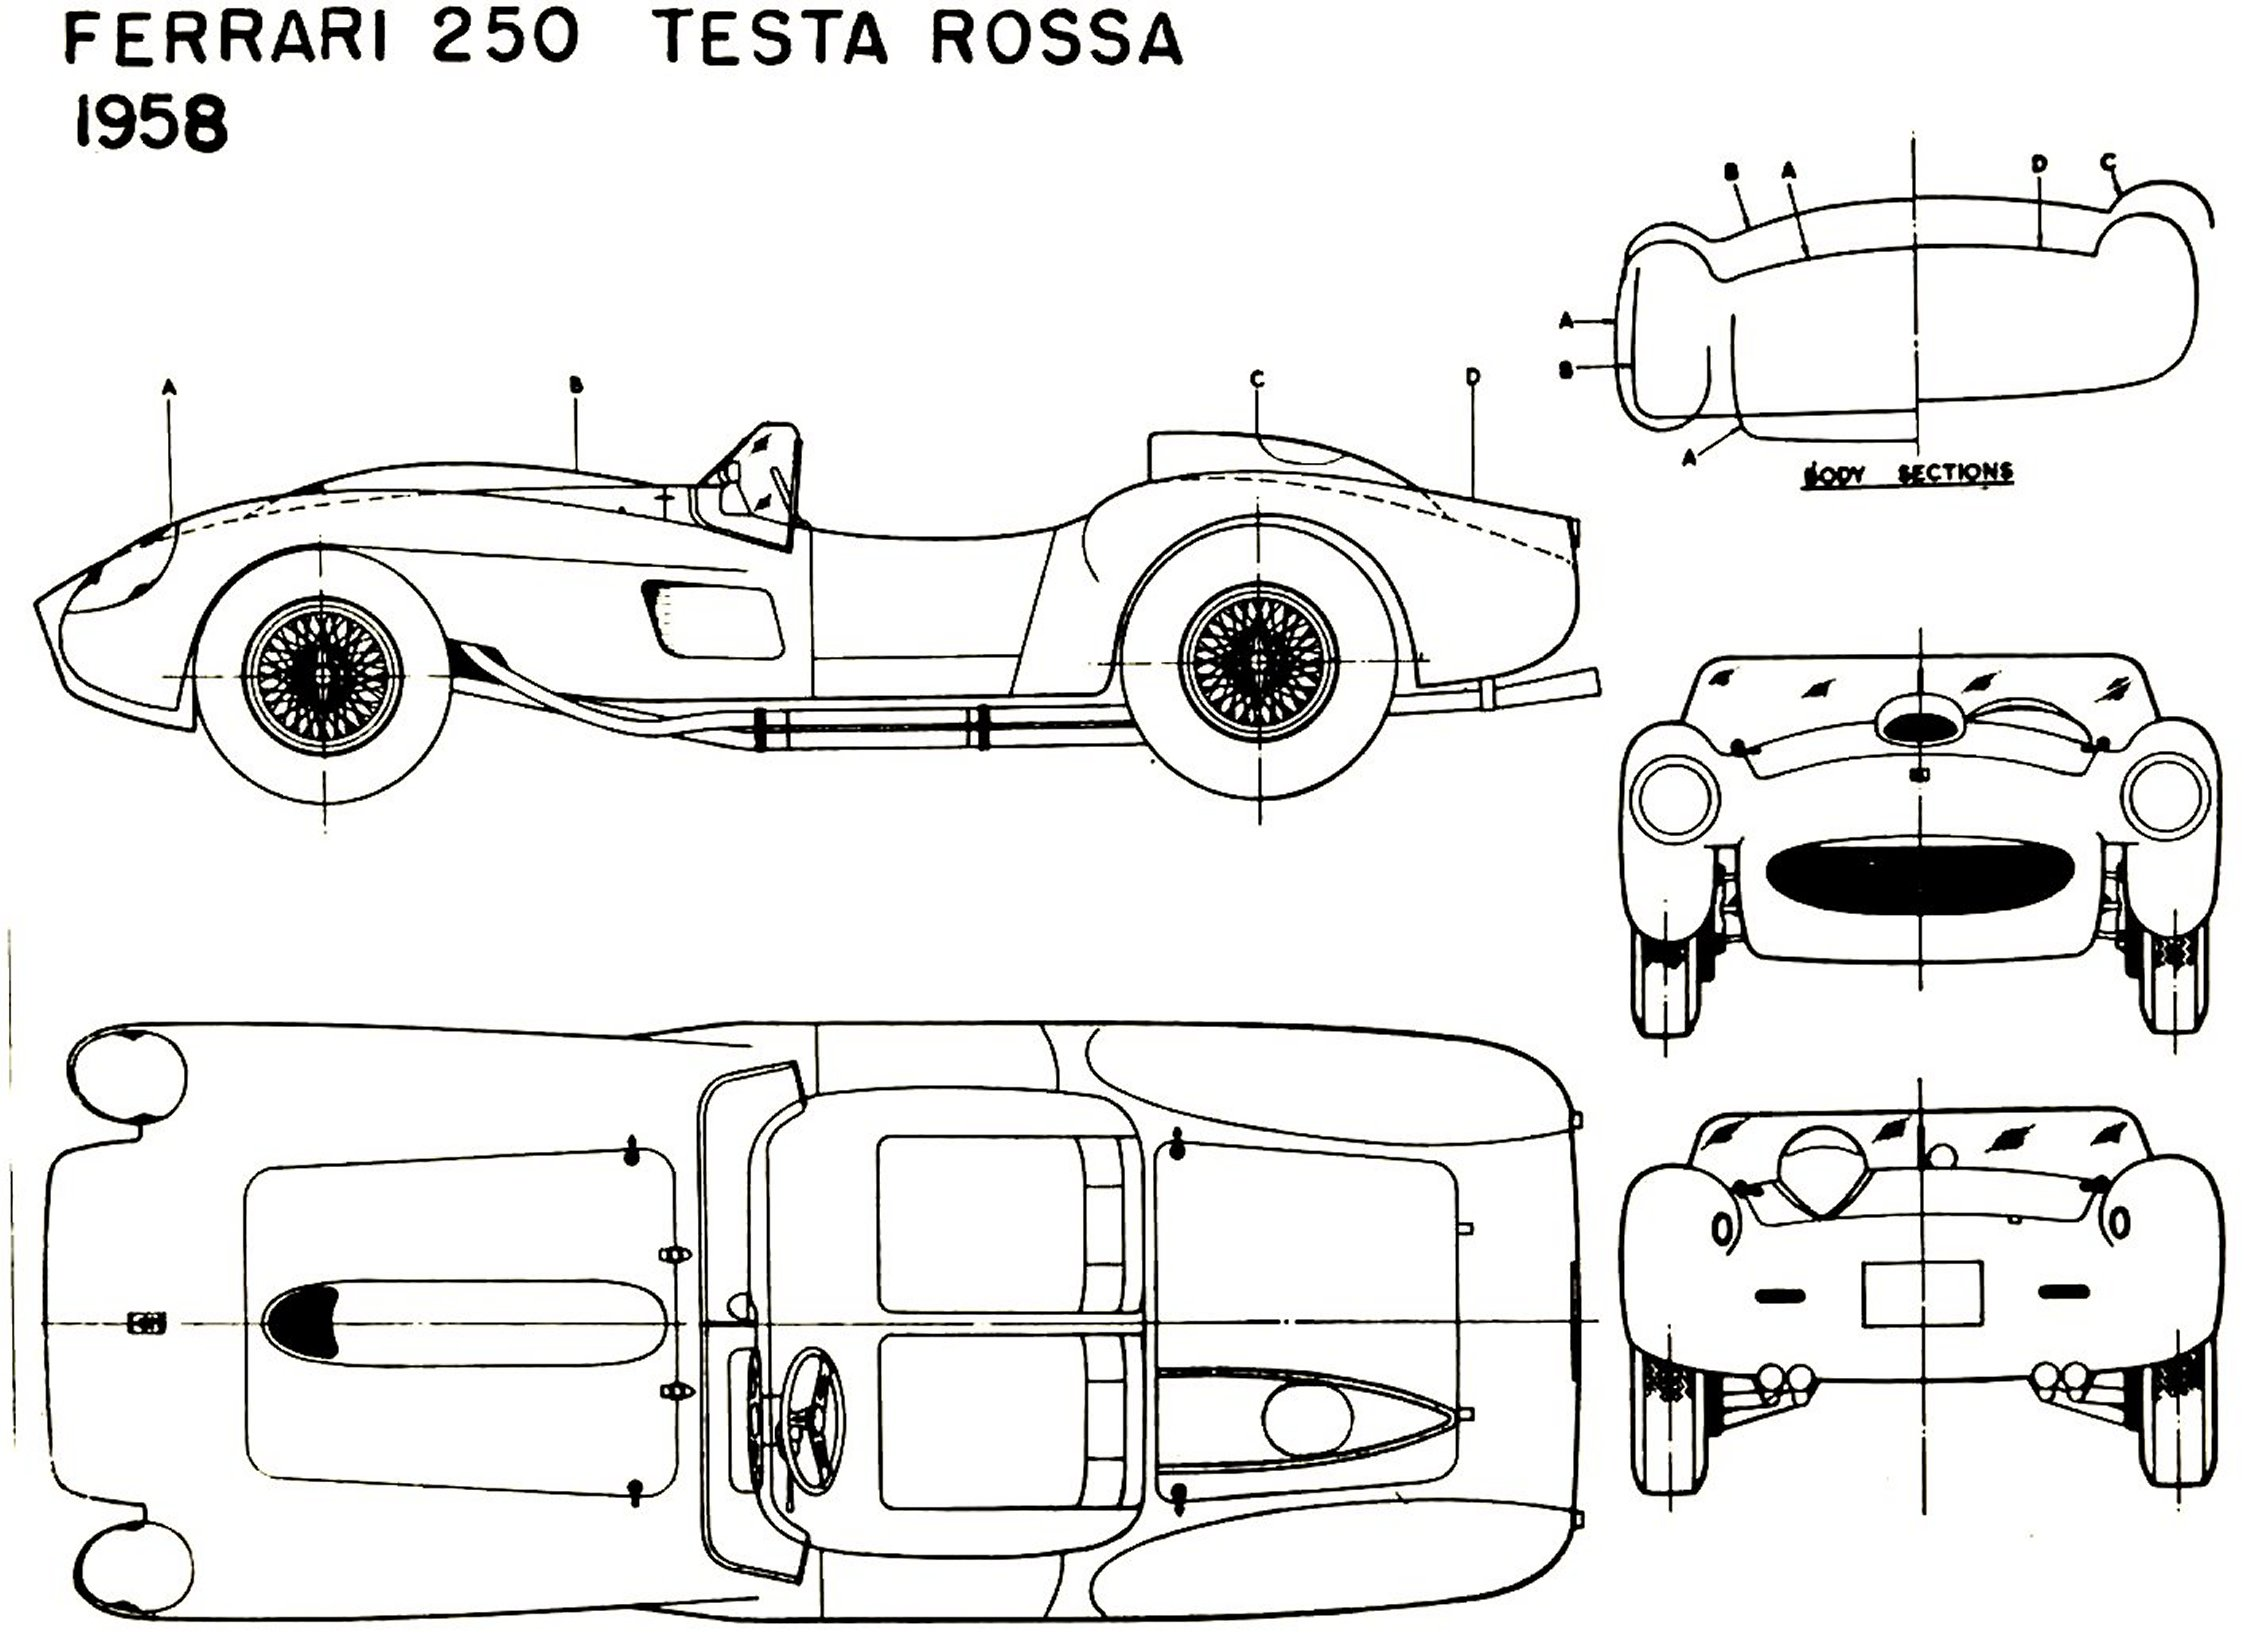 Ferrari 250 Testarossa 1958 Blueprint Download Free